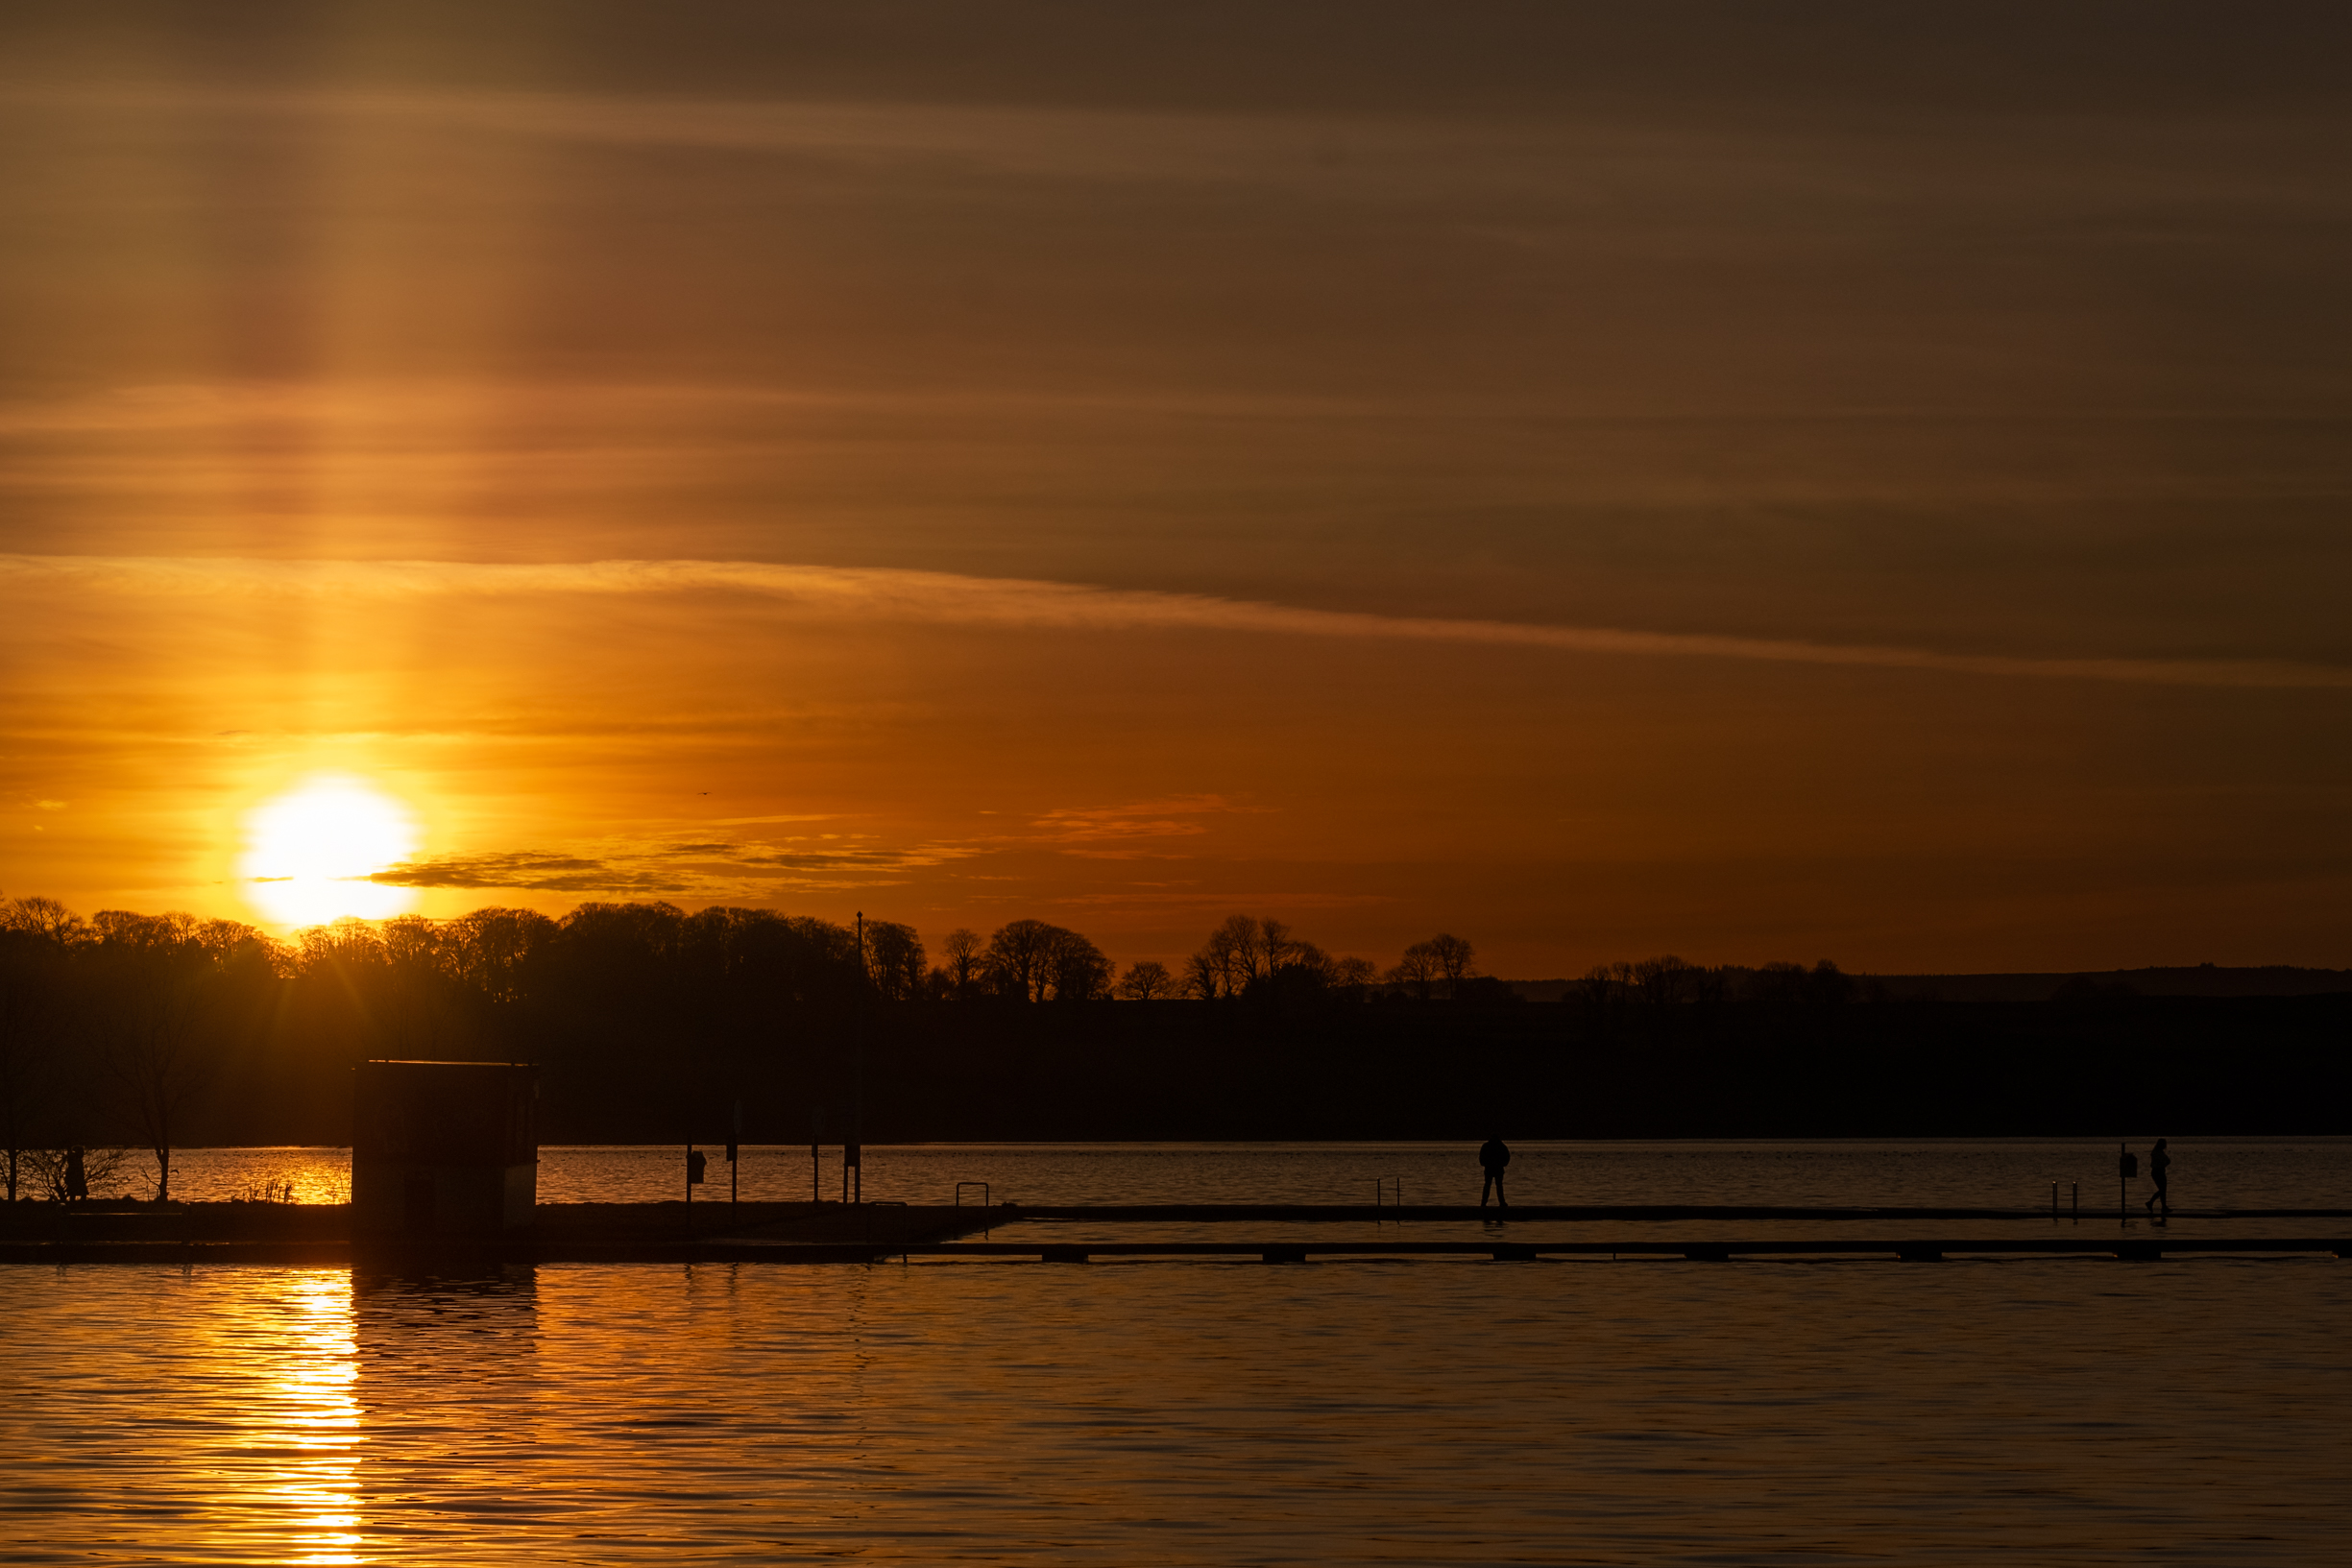 Man on Pier waiting for sunset at Loughrea Lake